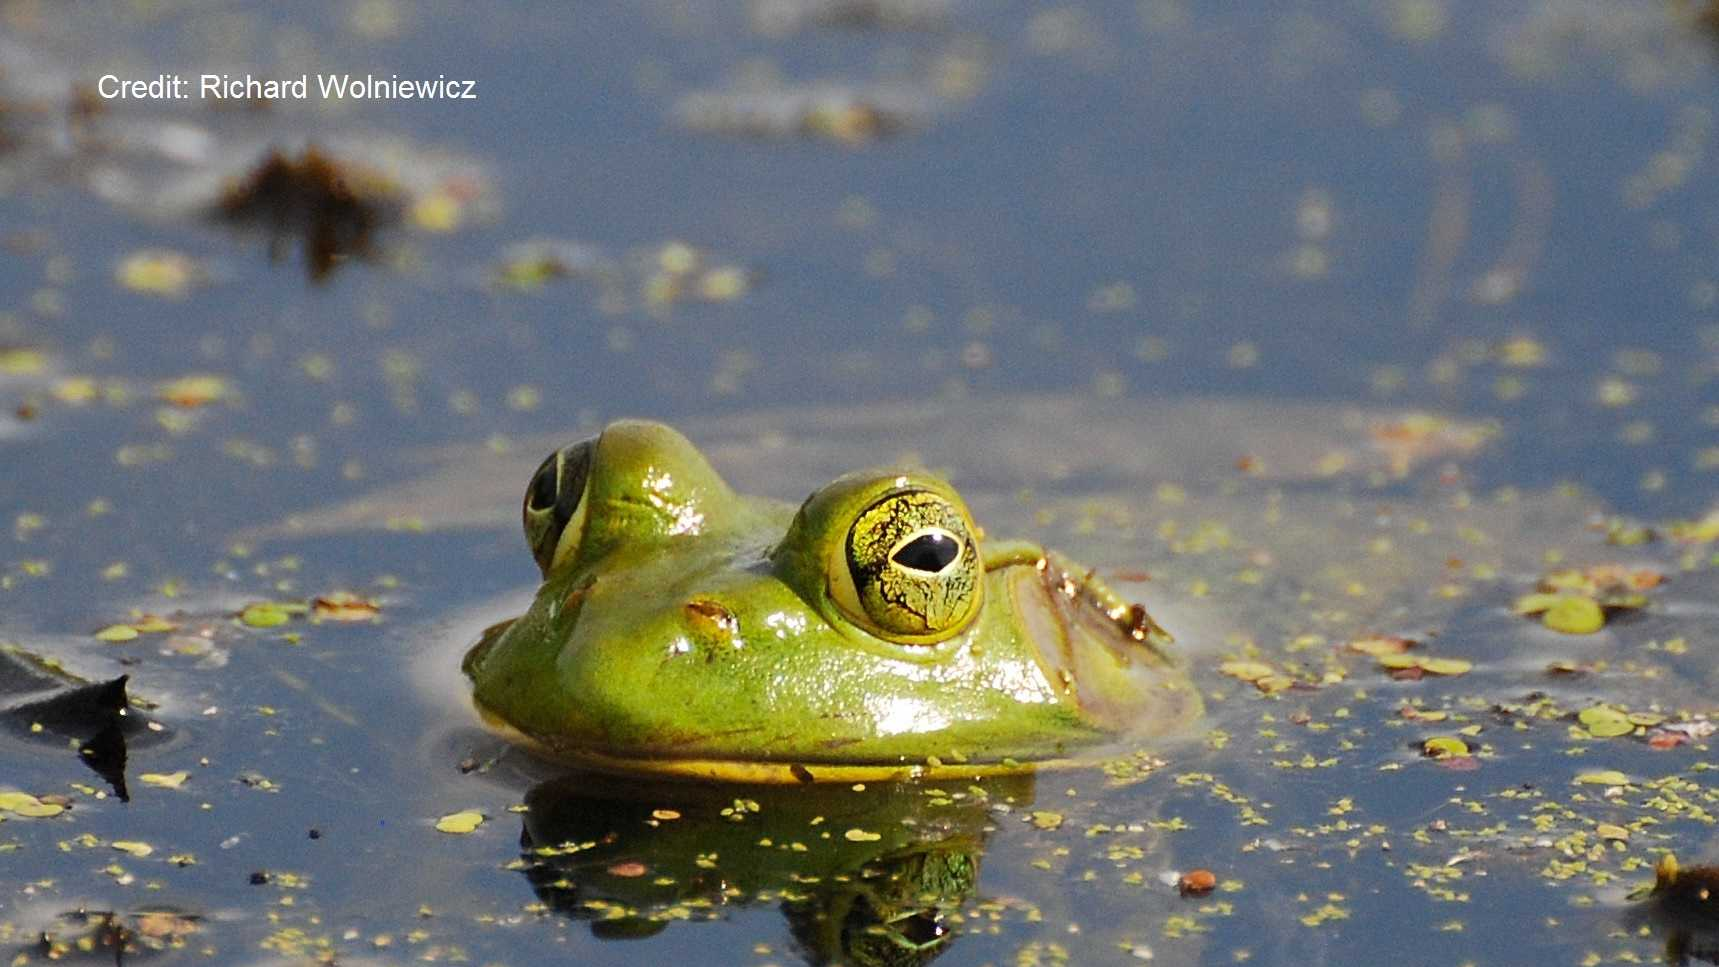 frog photo with credit.jpg